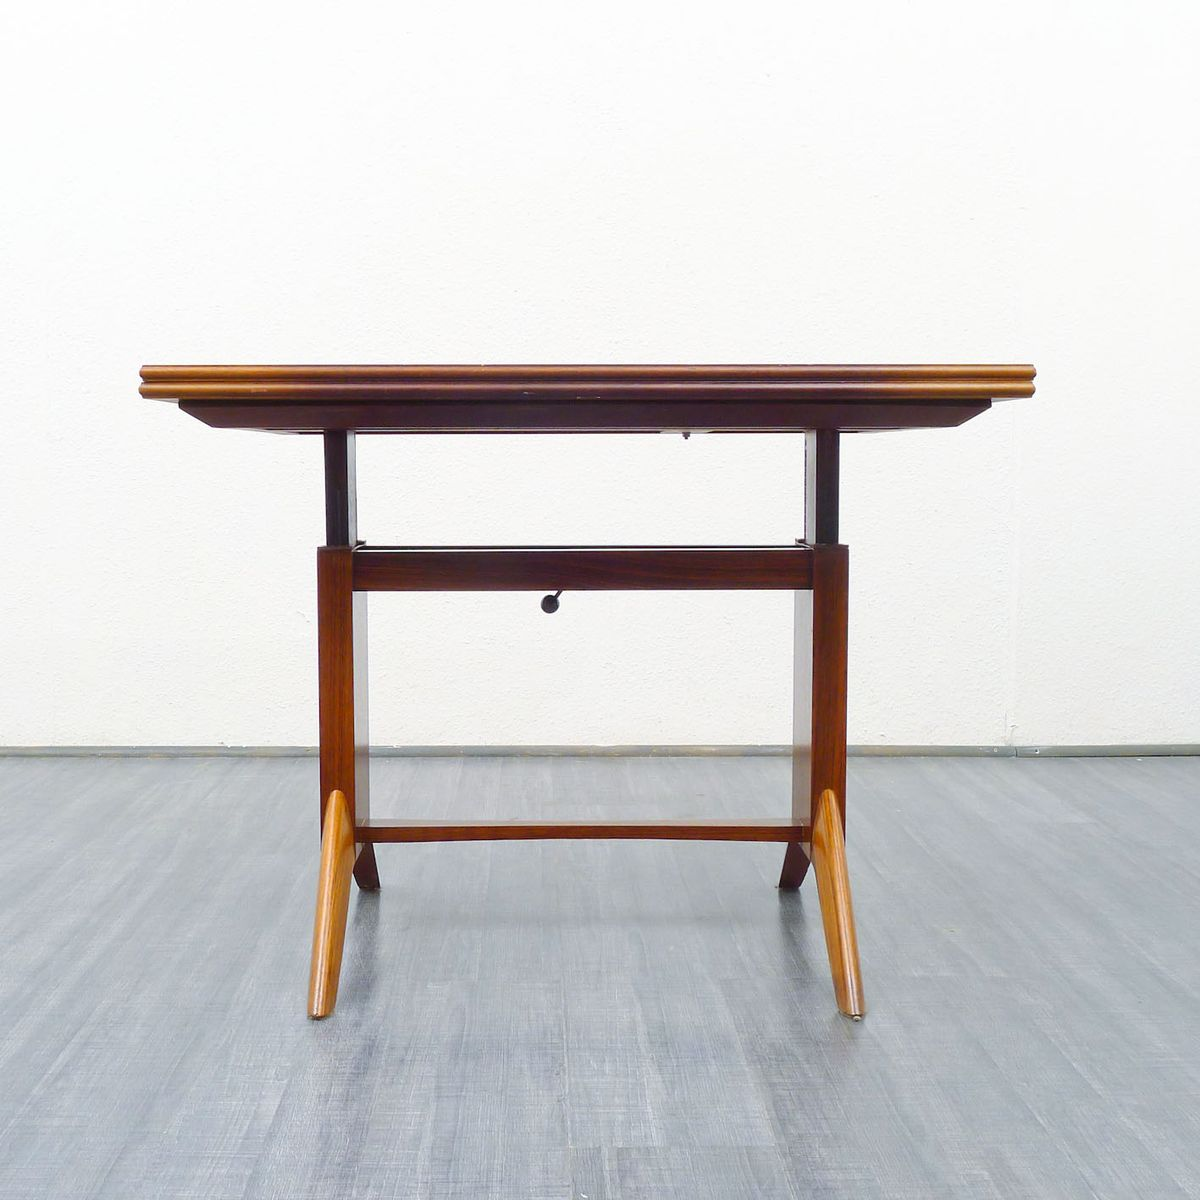 Rosewood coffee or dining table from wilhelm renz 1950s for sale at pamono Coffee table dining